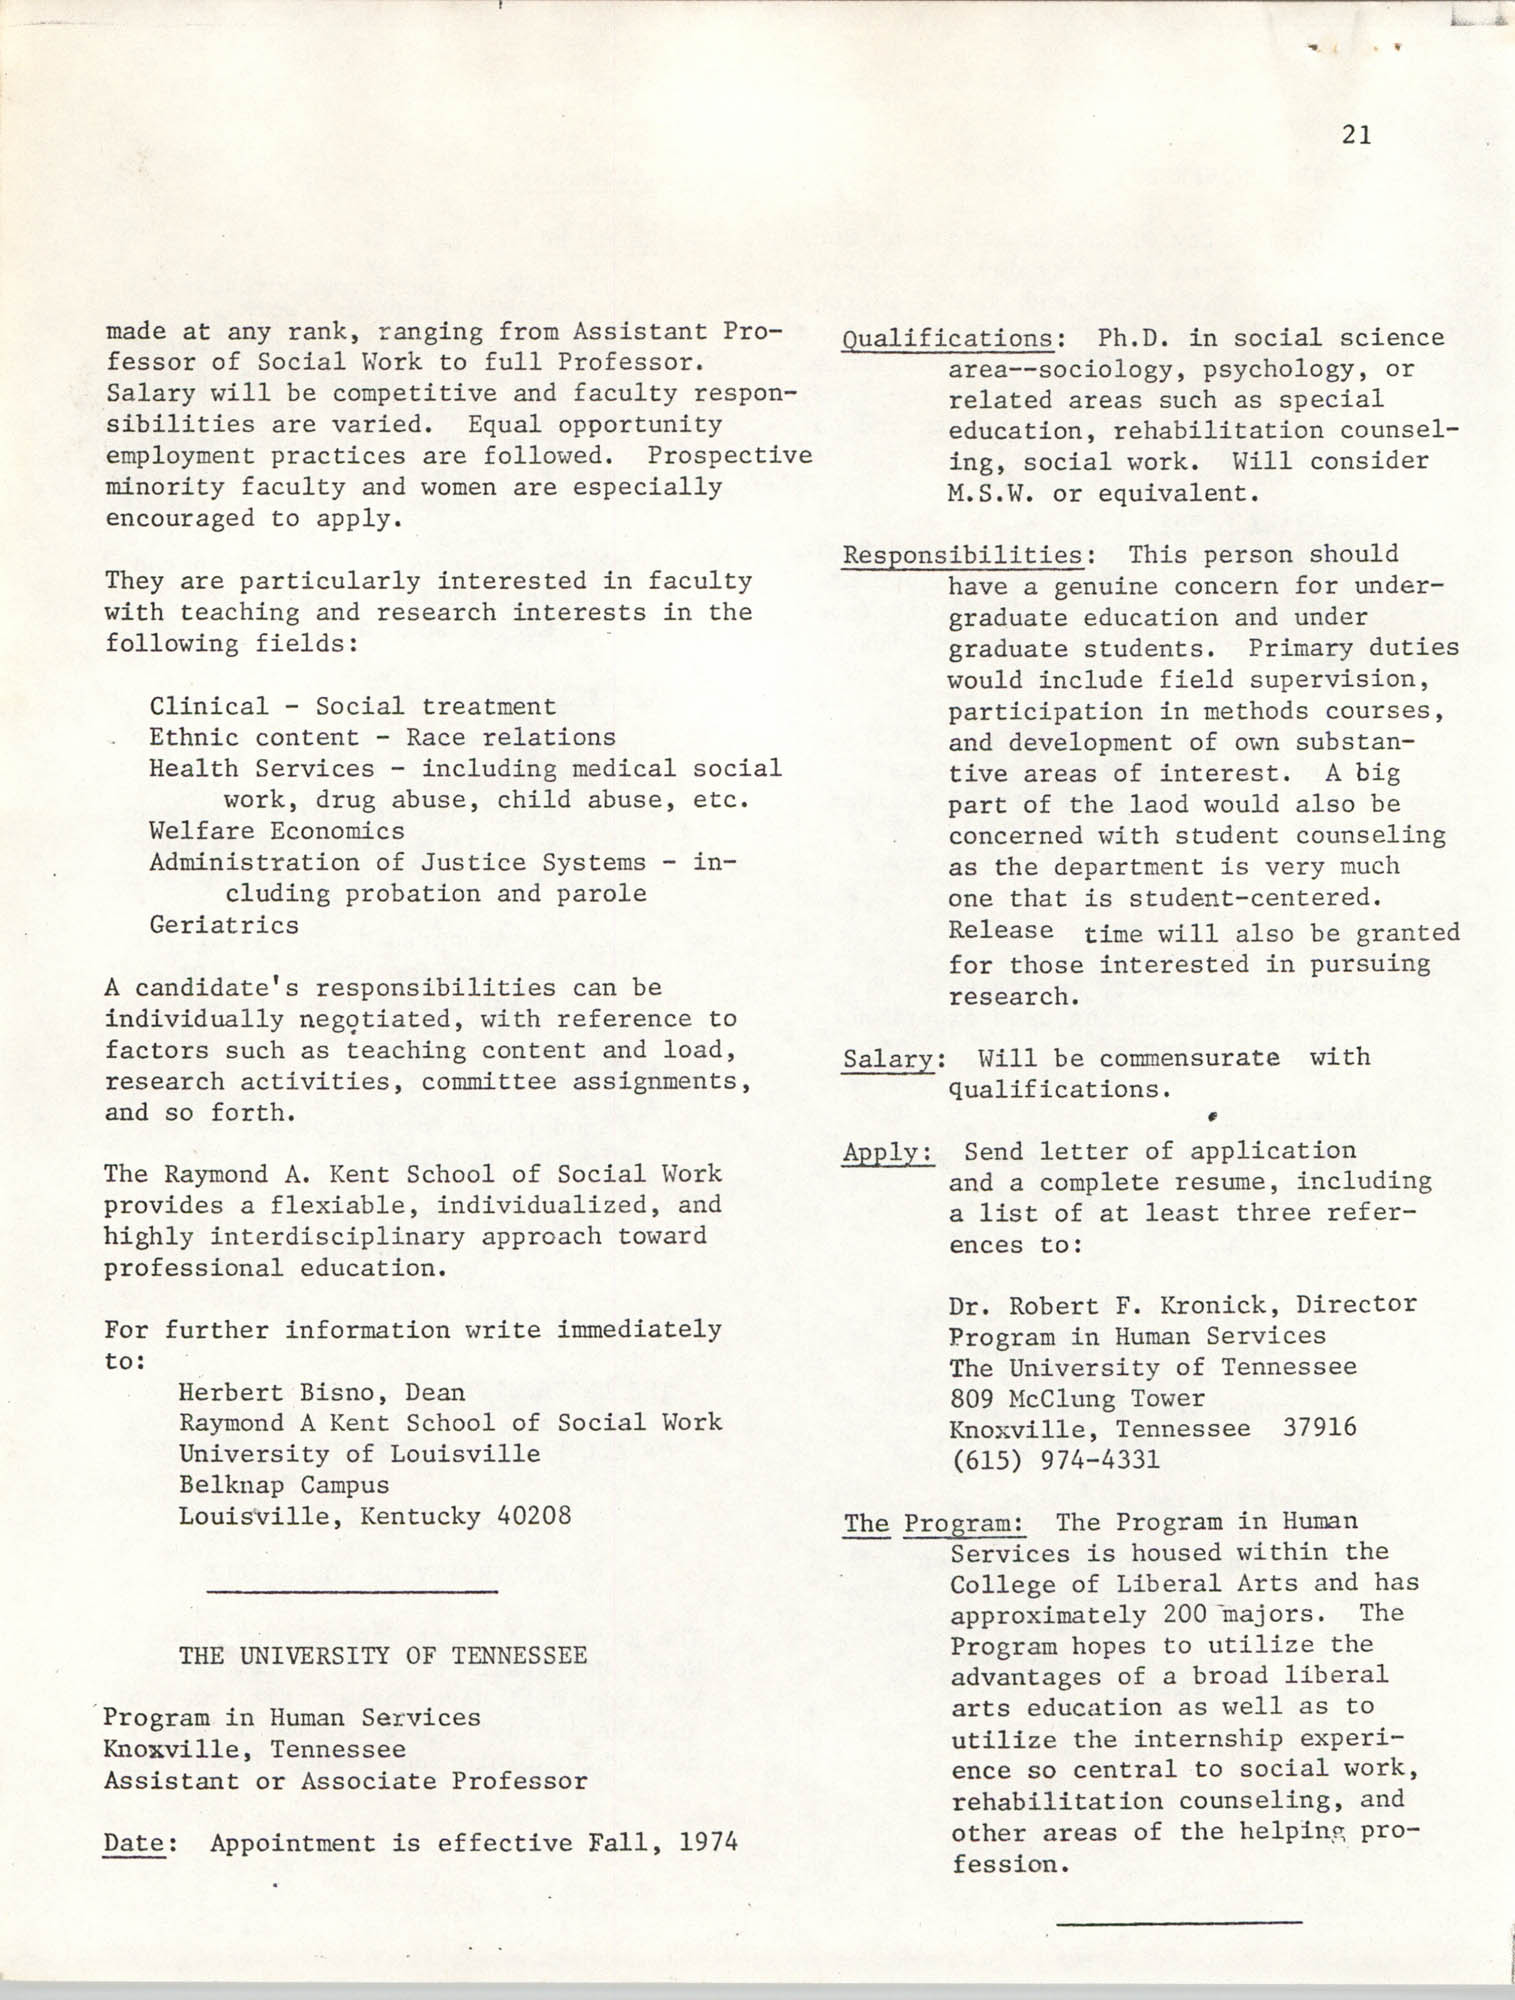 SHARE, Volume II, Number 3, March 1974, Page 21